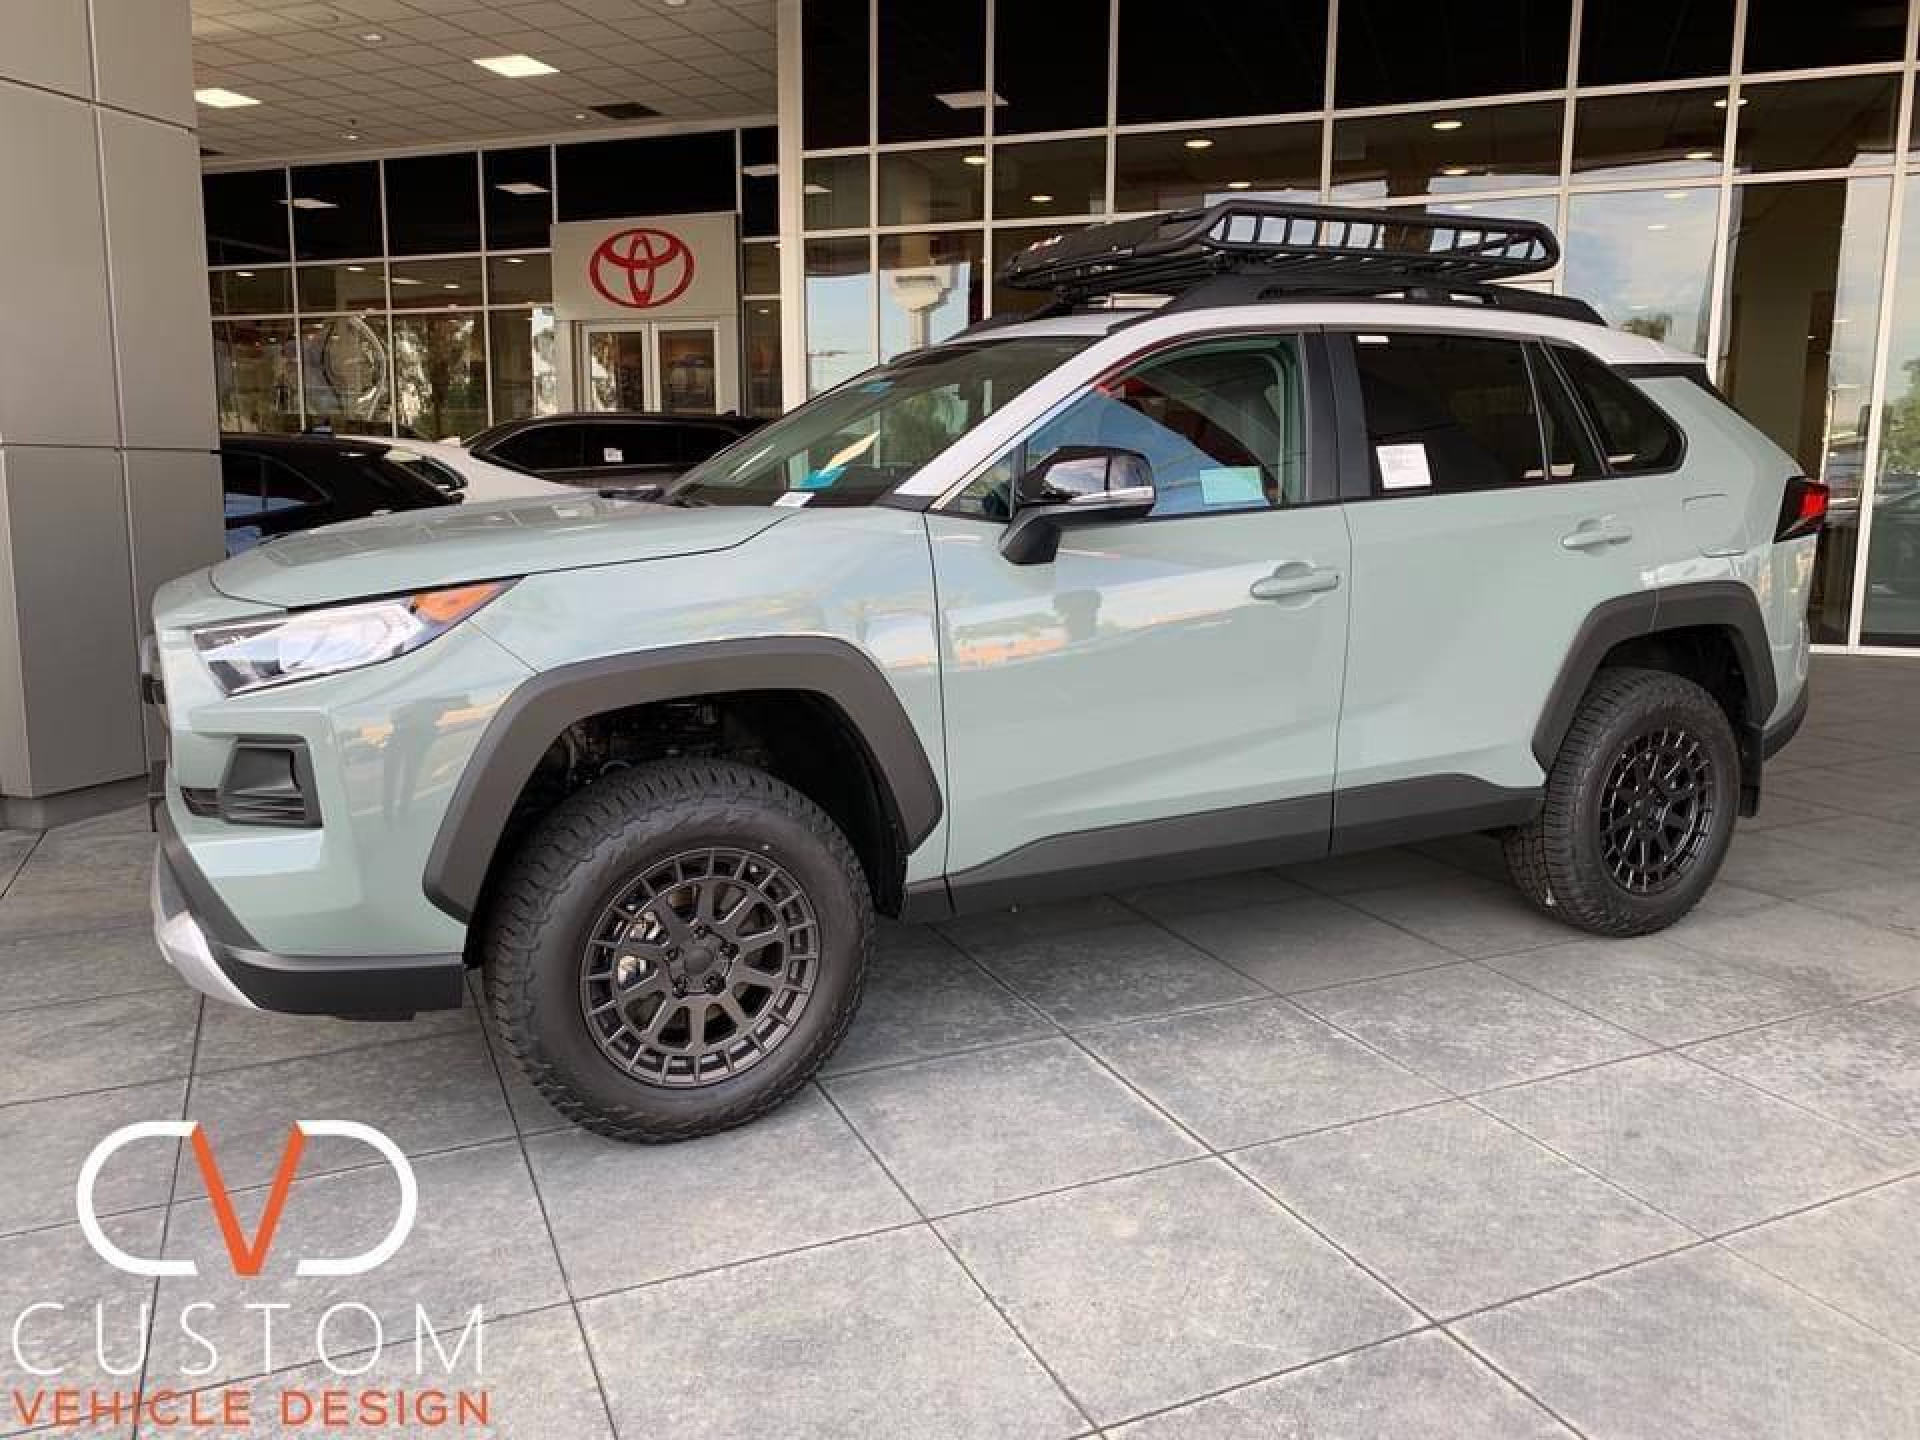 2020 Toyota RAV4 with Black Rhino Boxer wheels